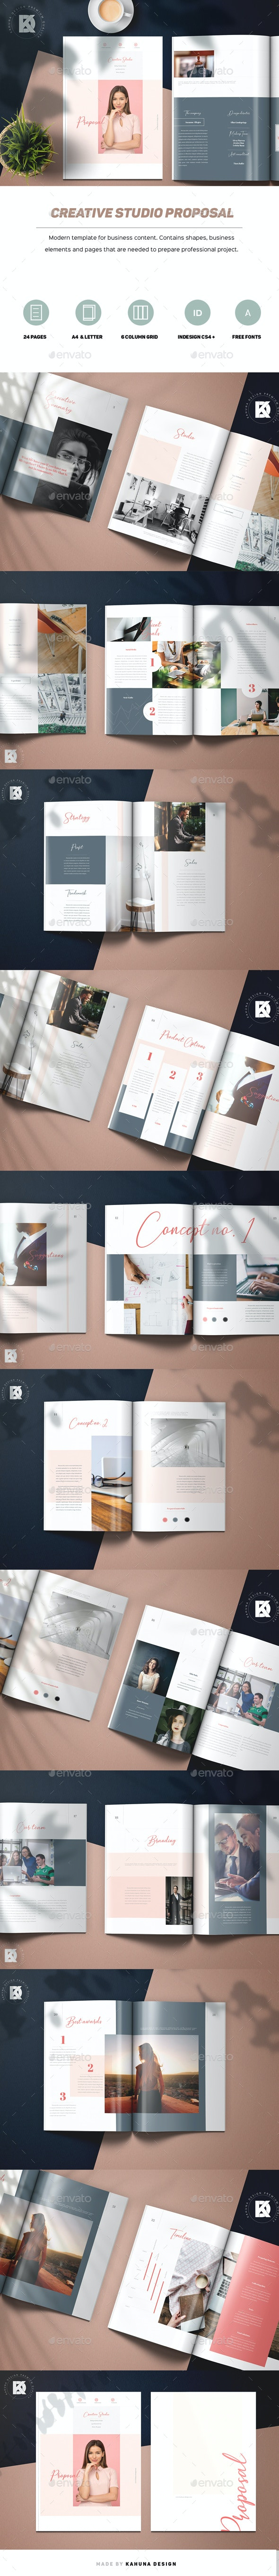 Creative Studio Proposal - Proposals & Invoices Stationery